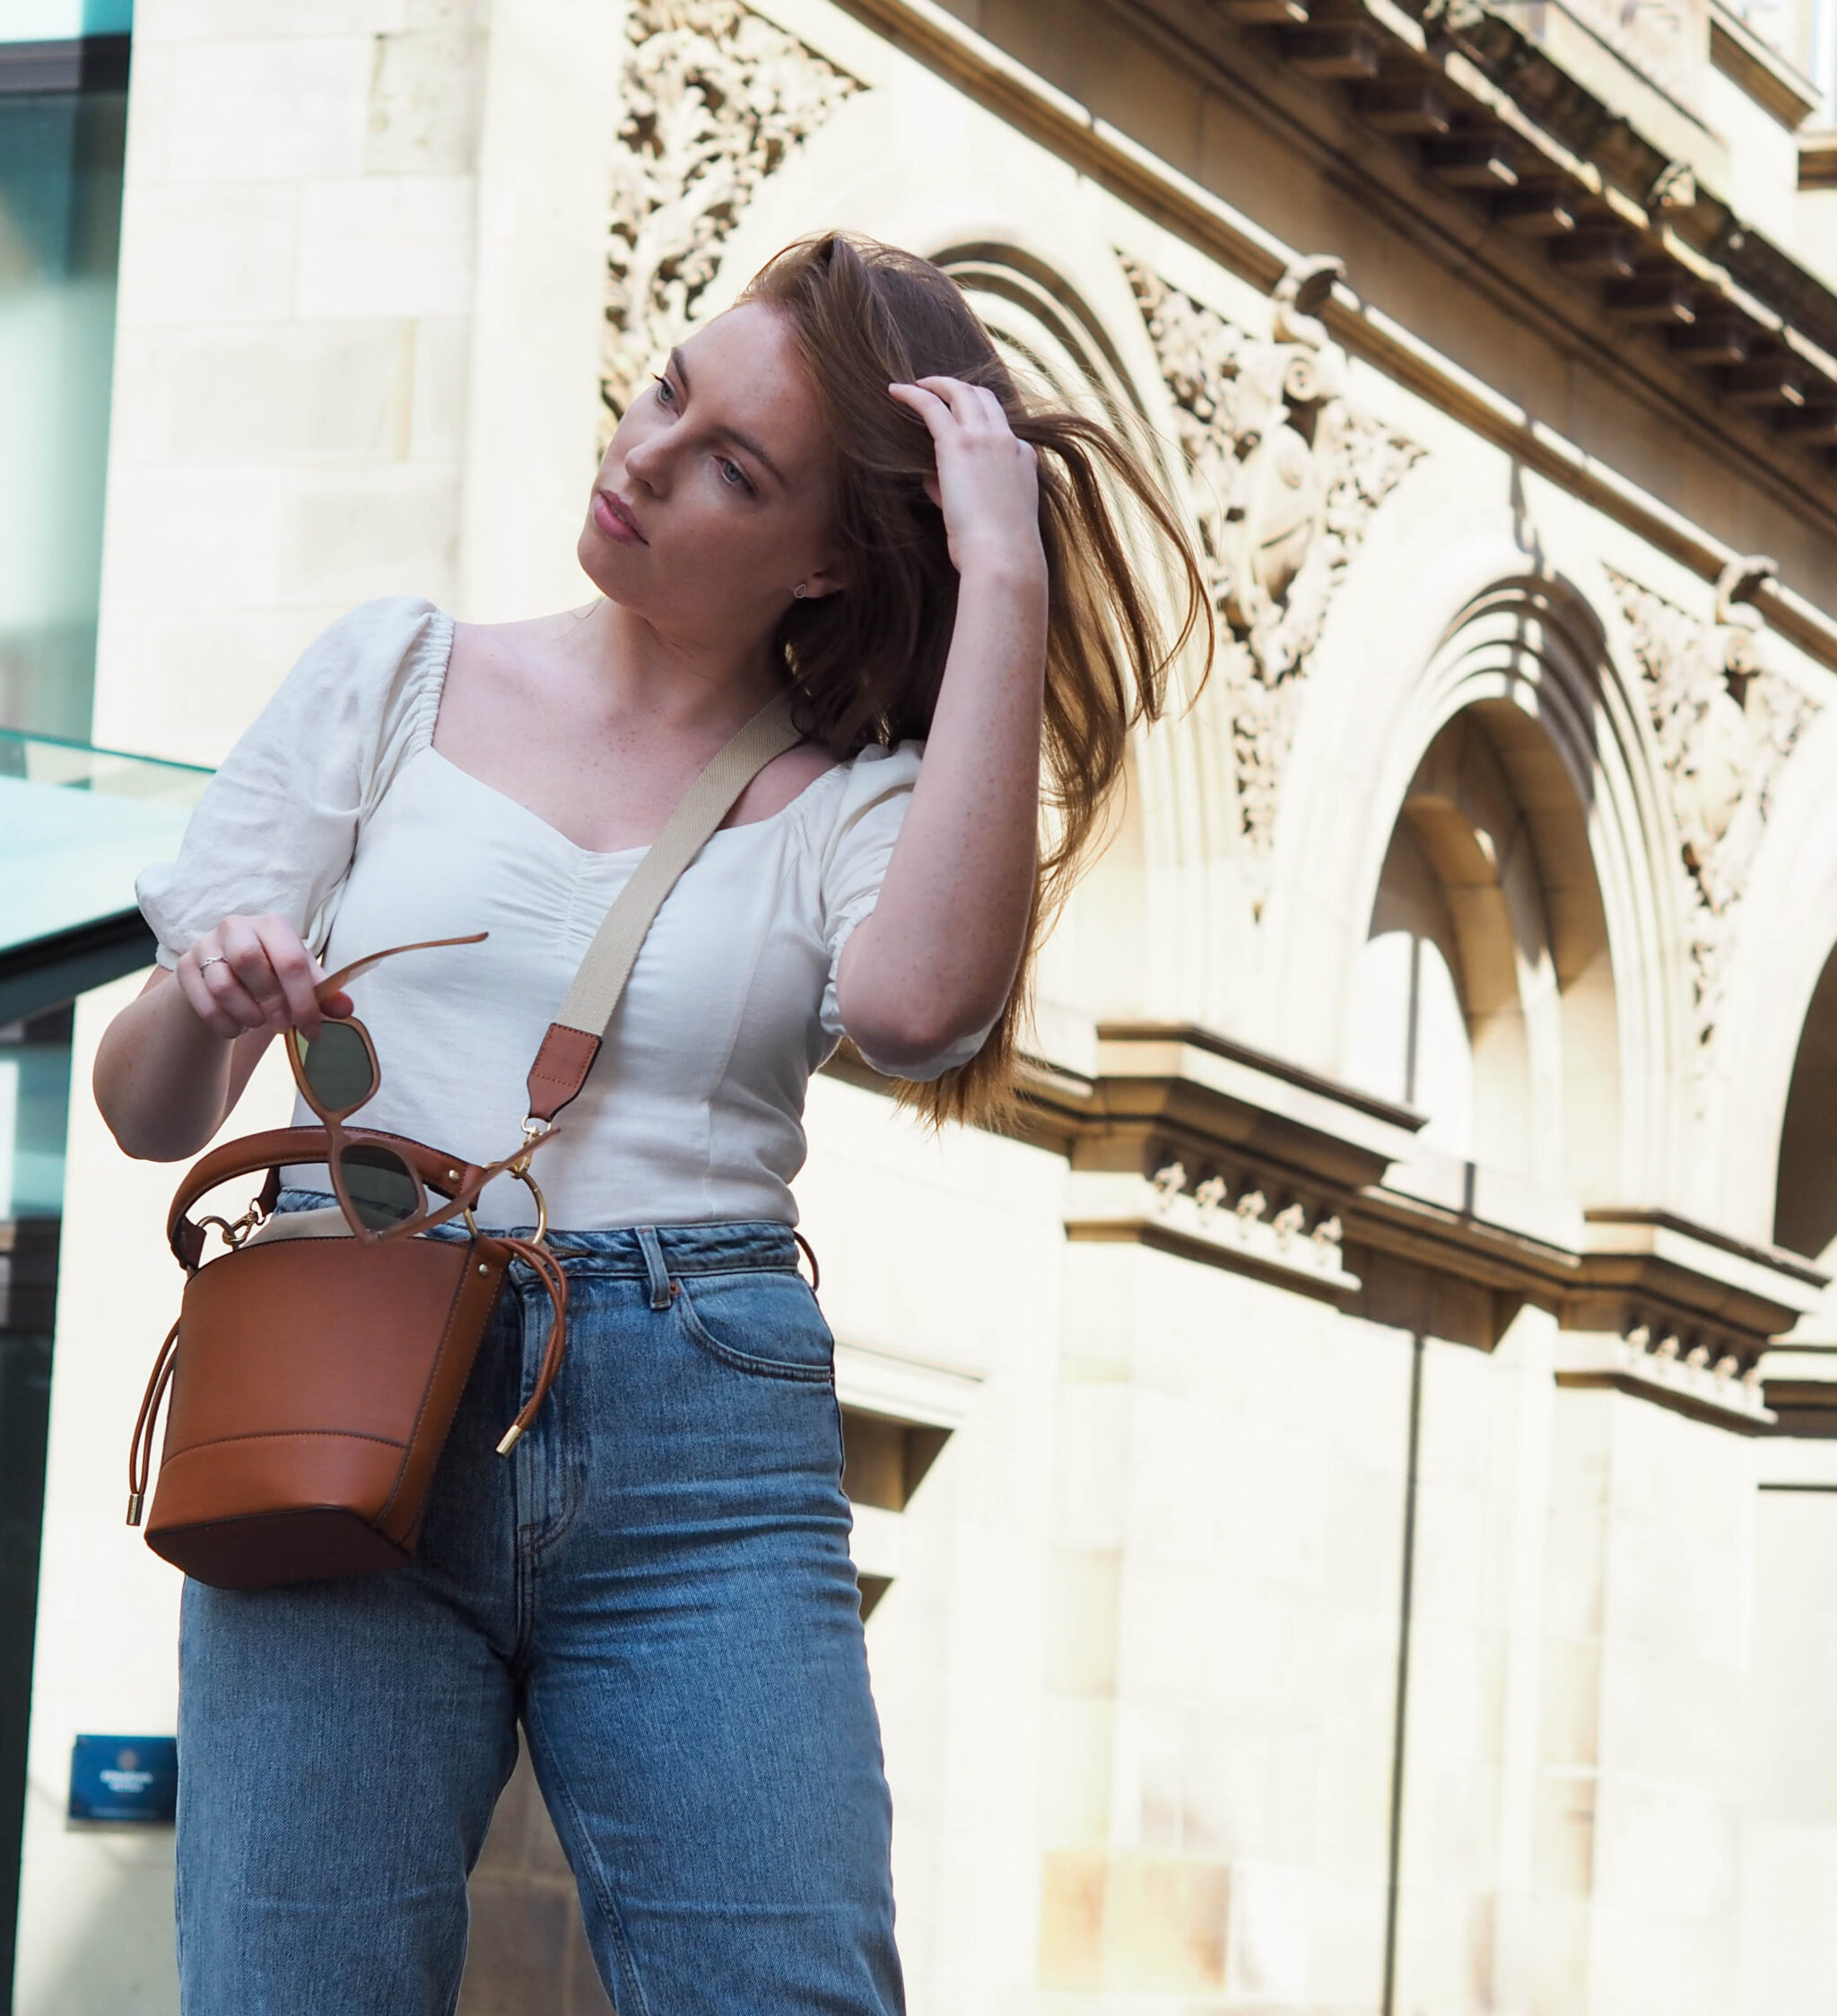 street style shot of girl wearing recycled jeans and white linen top